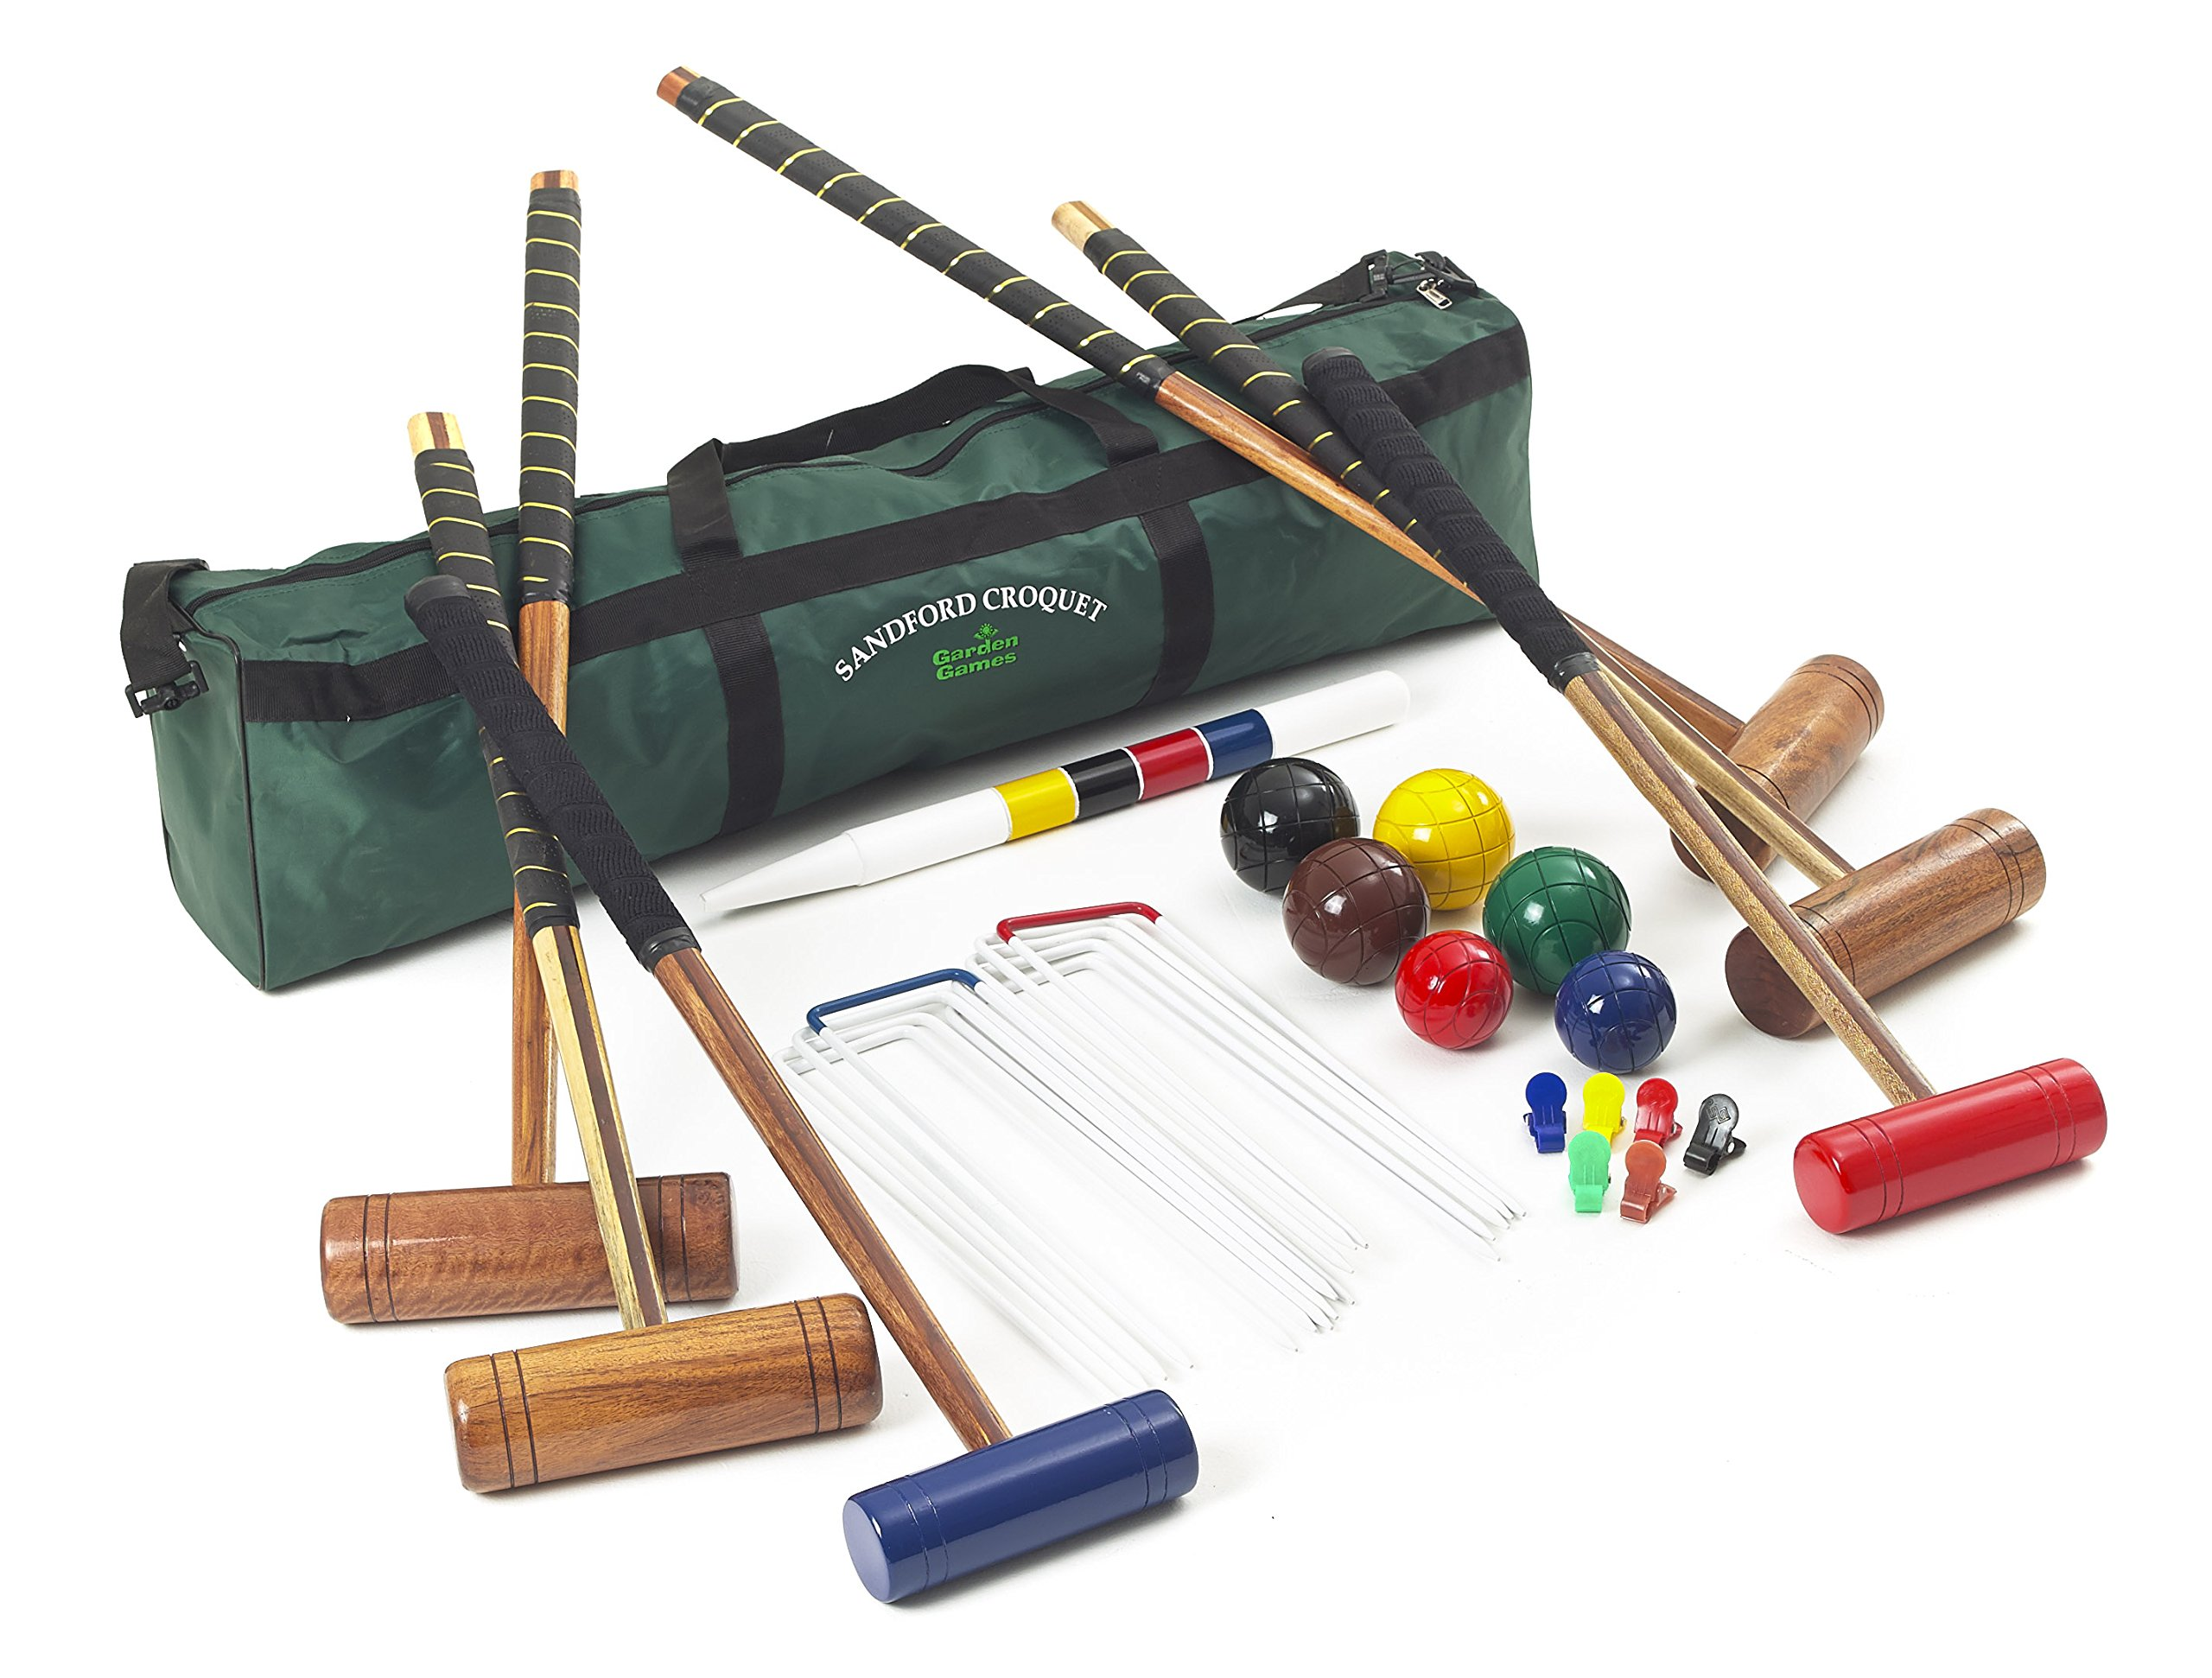 Sandford Family and Friends Croquet – 6 Player 9 Wicket Set by Garden Games